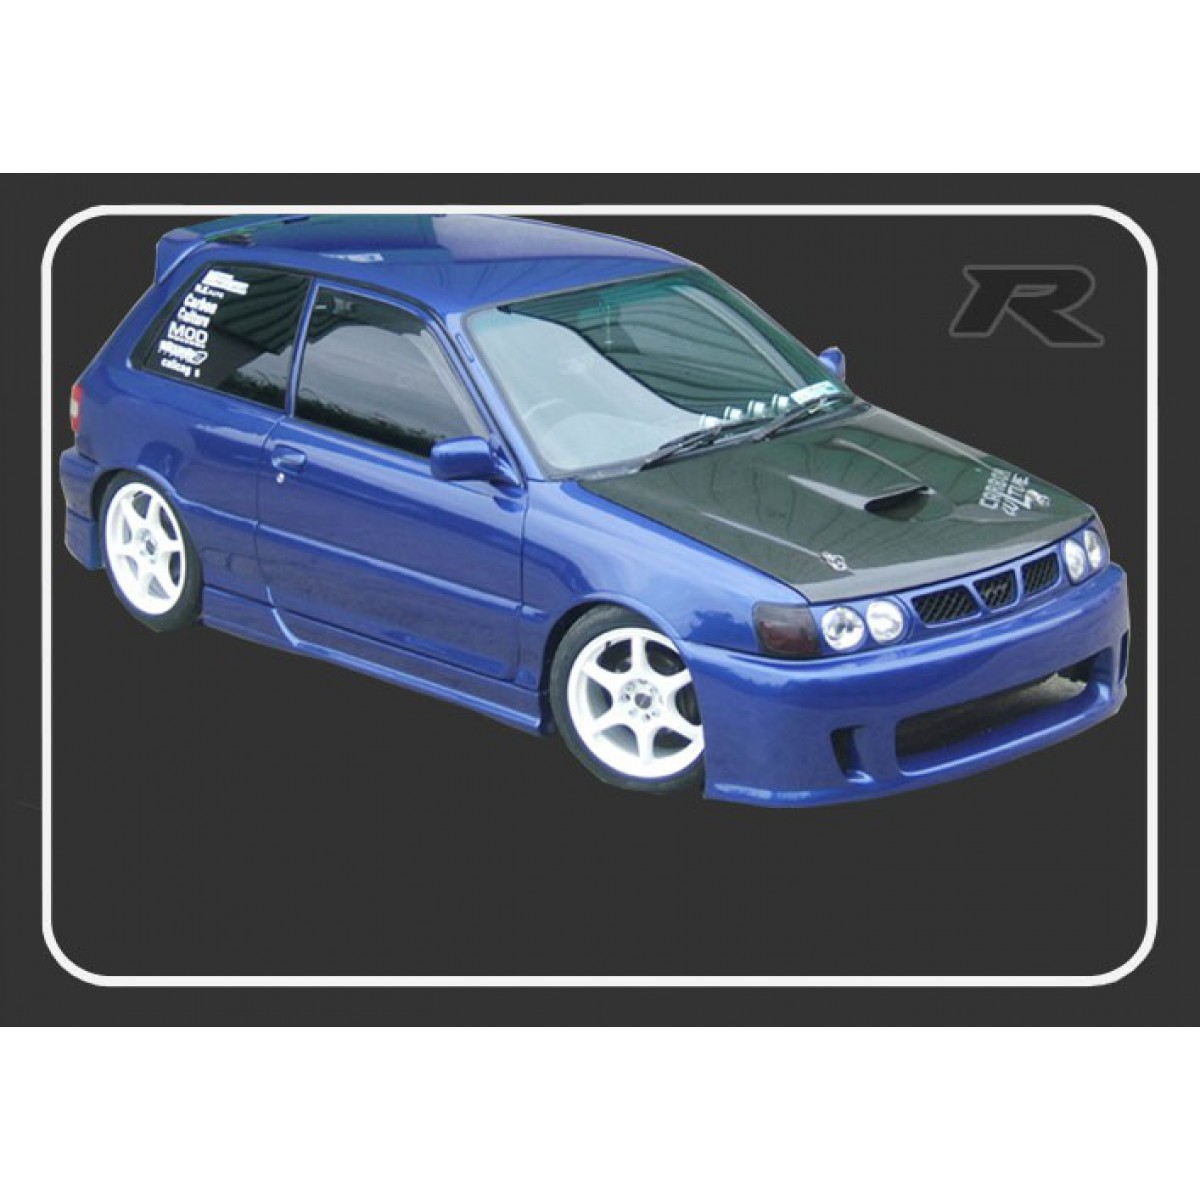 STARLET GT TURBO 90-95 CARBON BONNET WITH VENT SGTT - TOYOTA